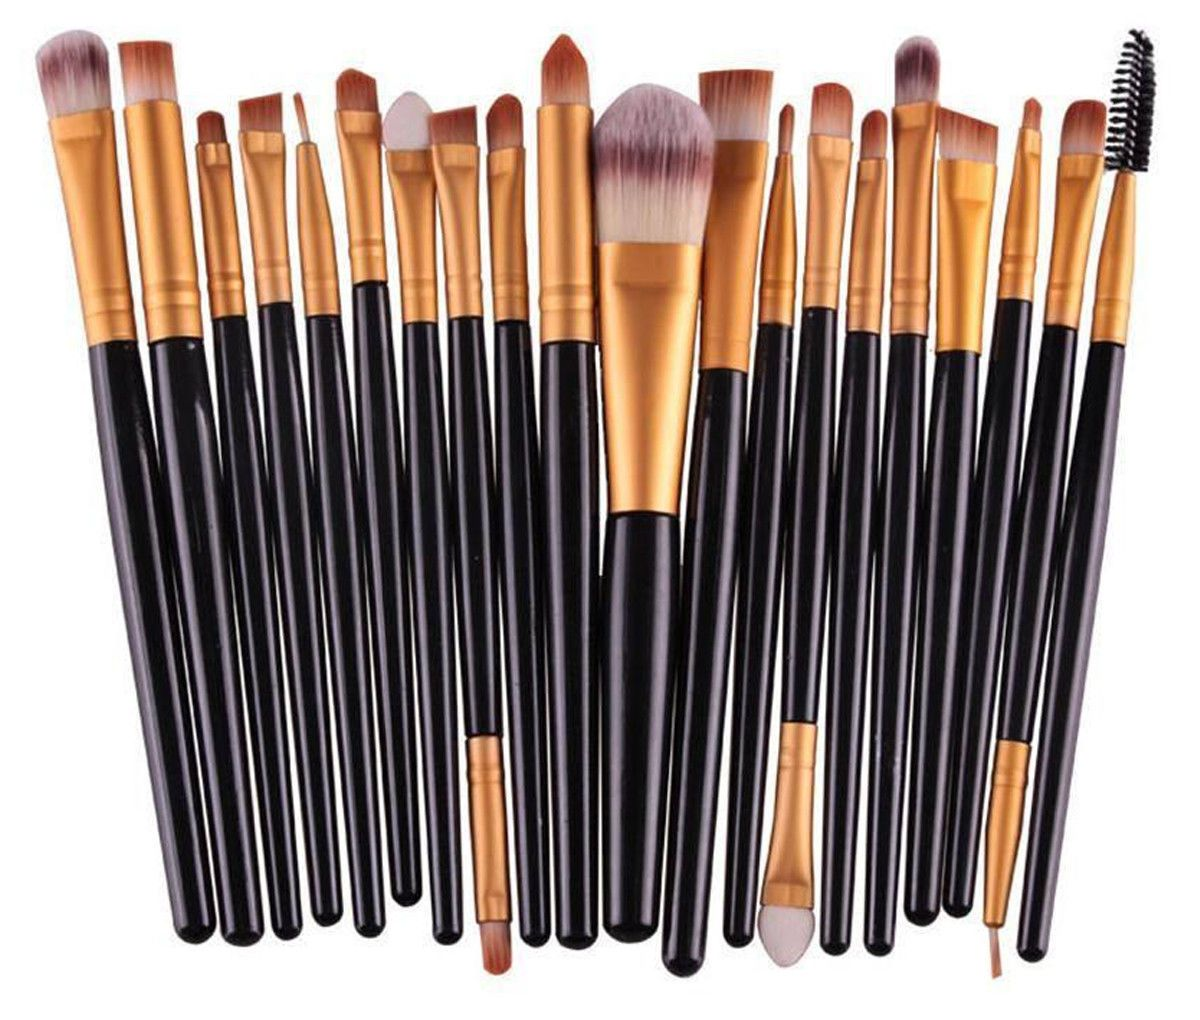 Glamza 20pc Makeup Brush Set - Black, Cosmetic Tools by Forever Cosmetics